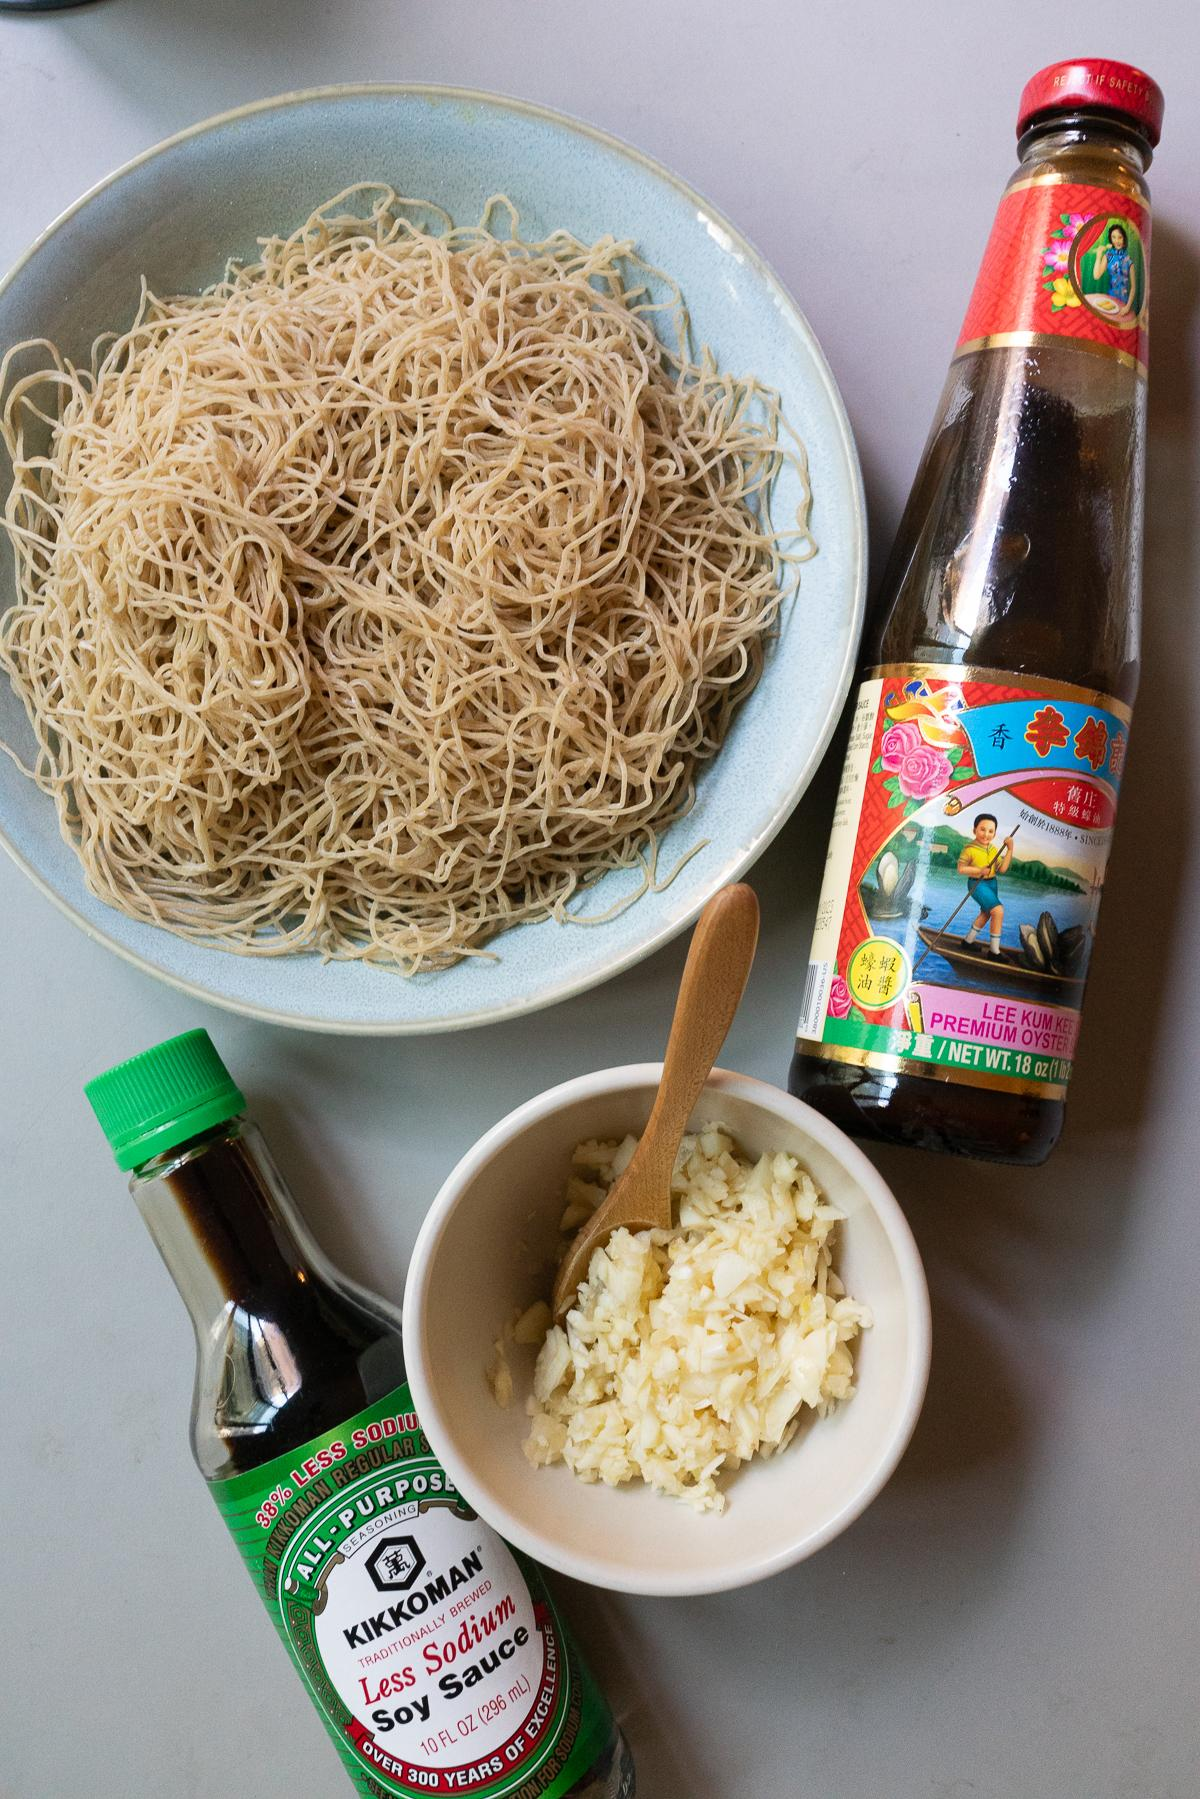 Ingredients for Gon Lo Mein: thin egg noodles, garlic, oyster sauce, and soy sauce.